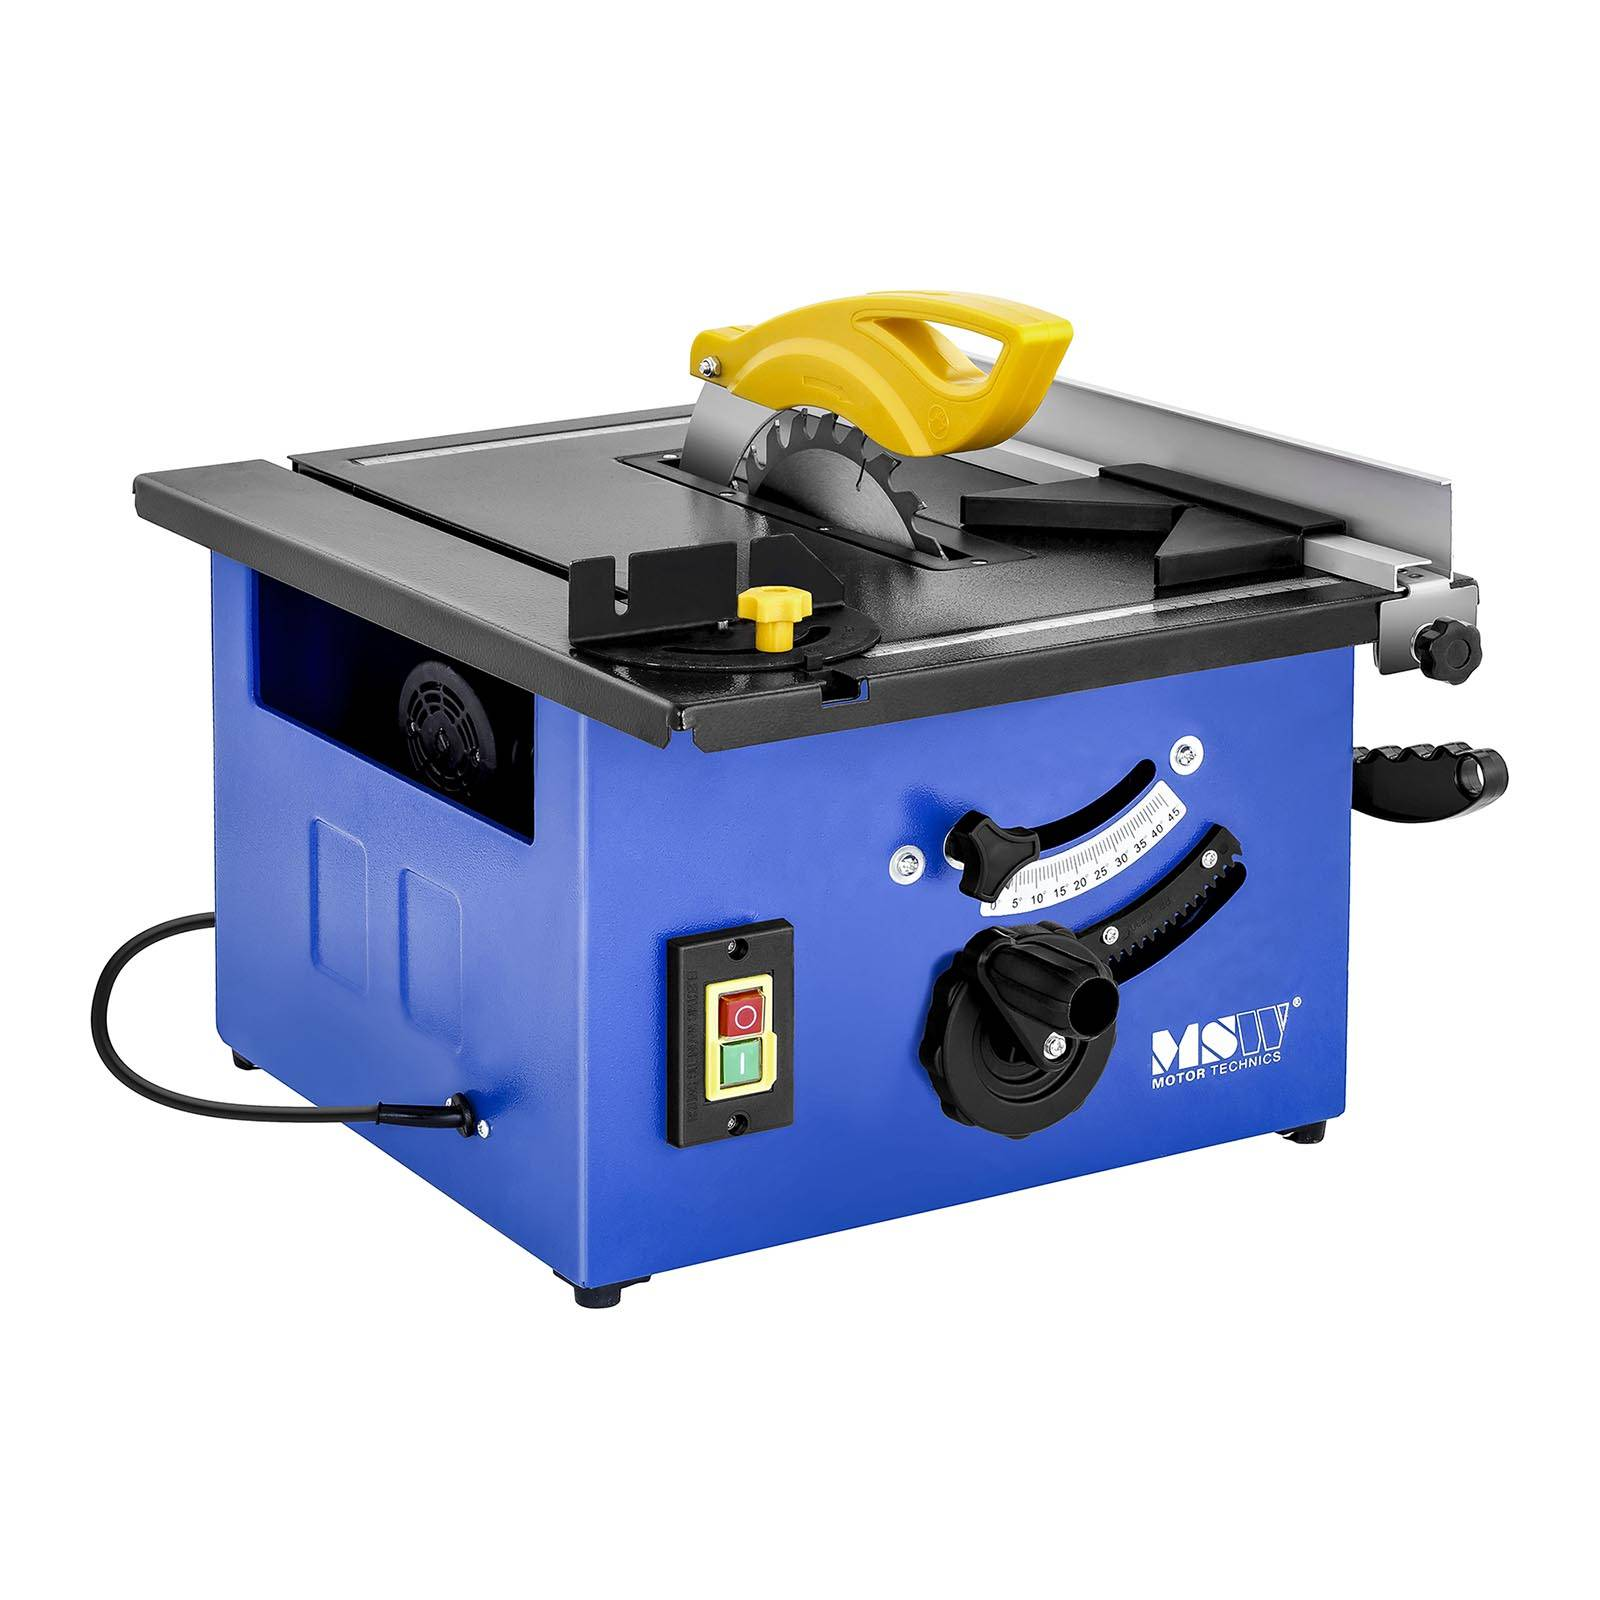 MSW Table Saw 4,800 rpm - 2,280 W